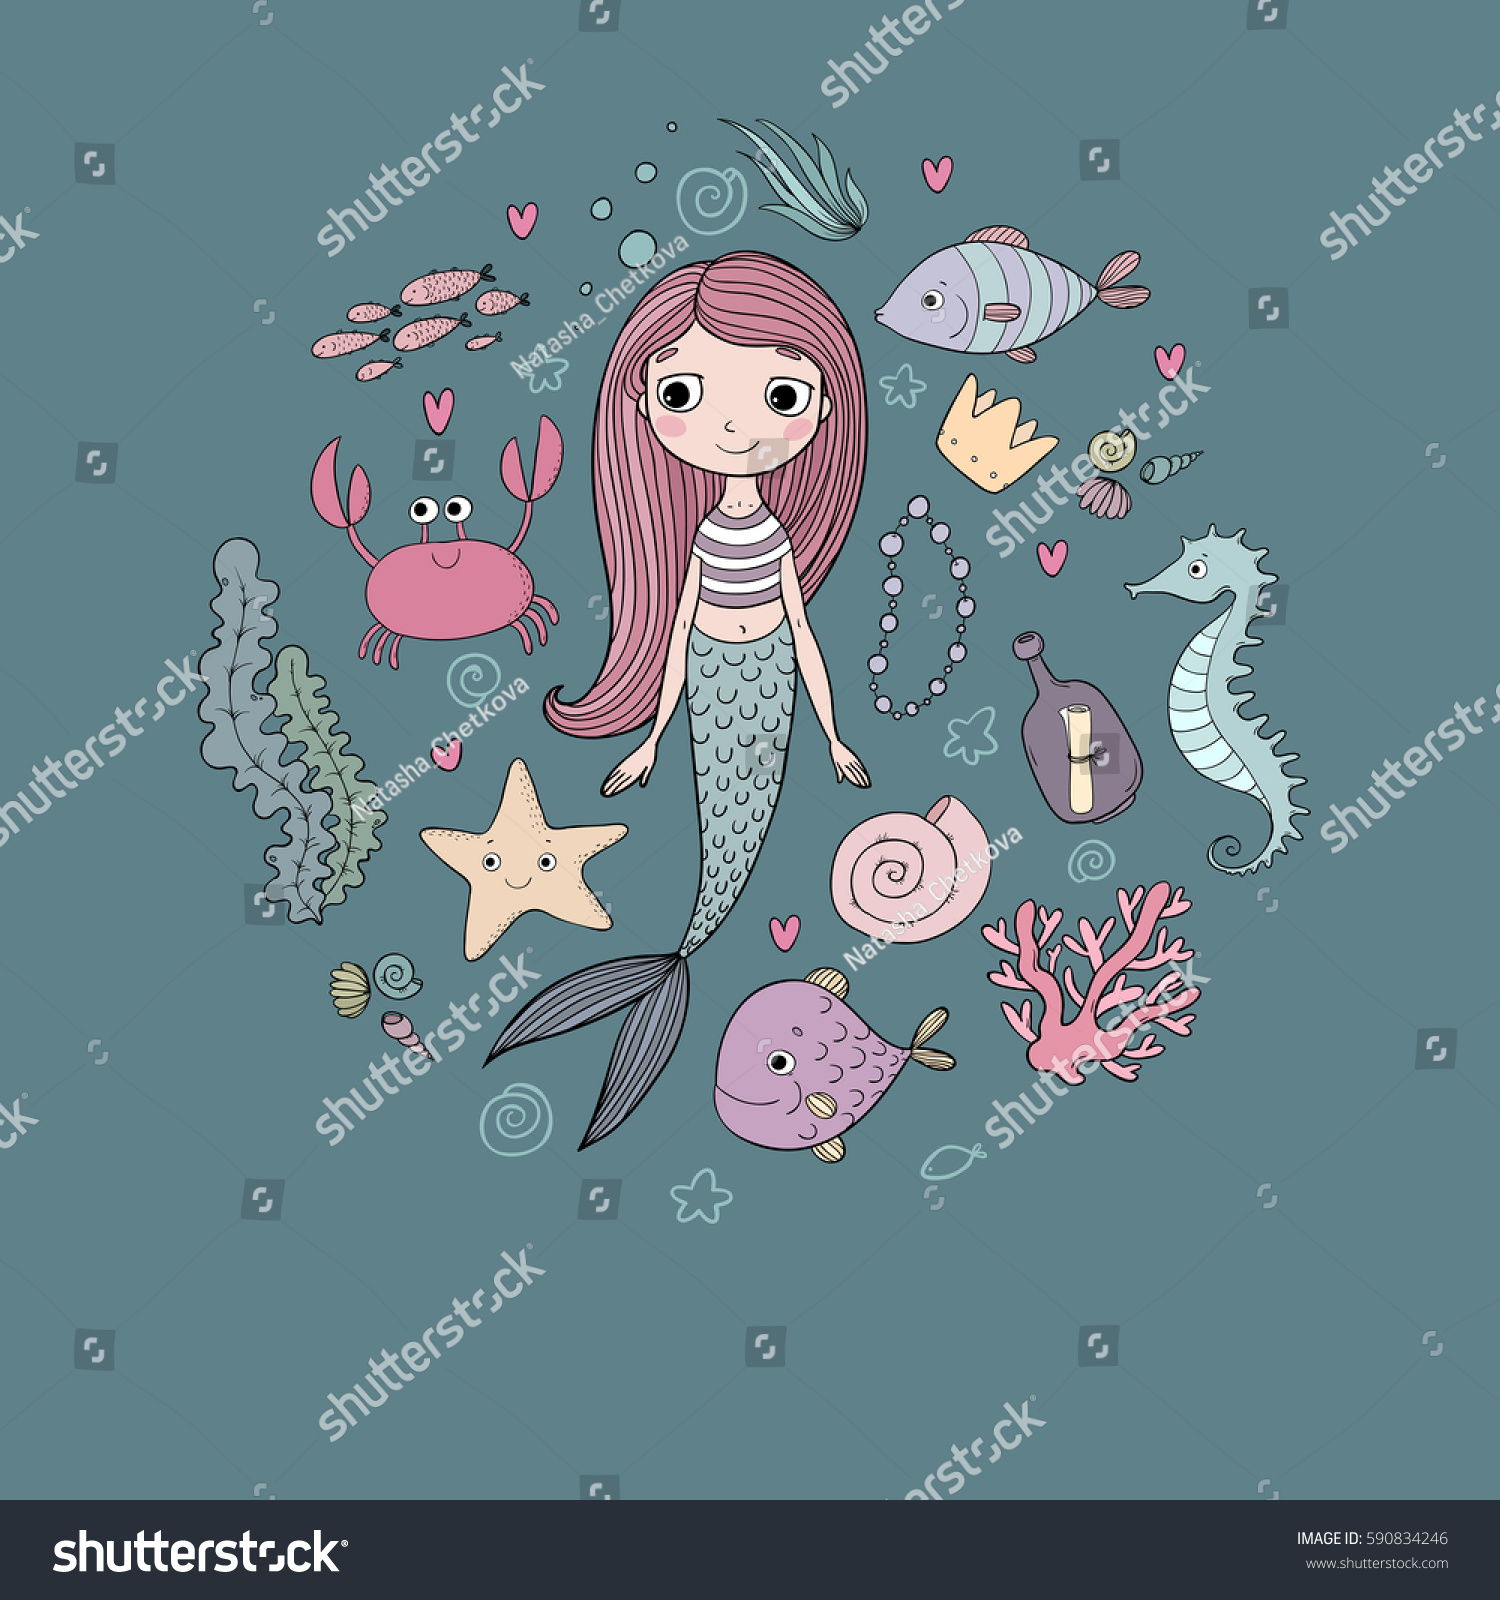 Marine Illustrations Set Little Cute Cartoon Stock Vector